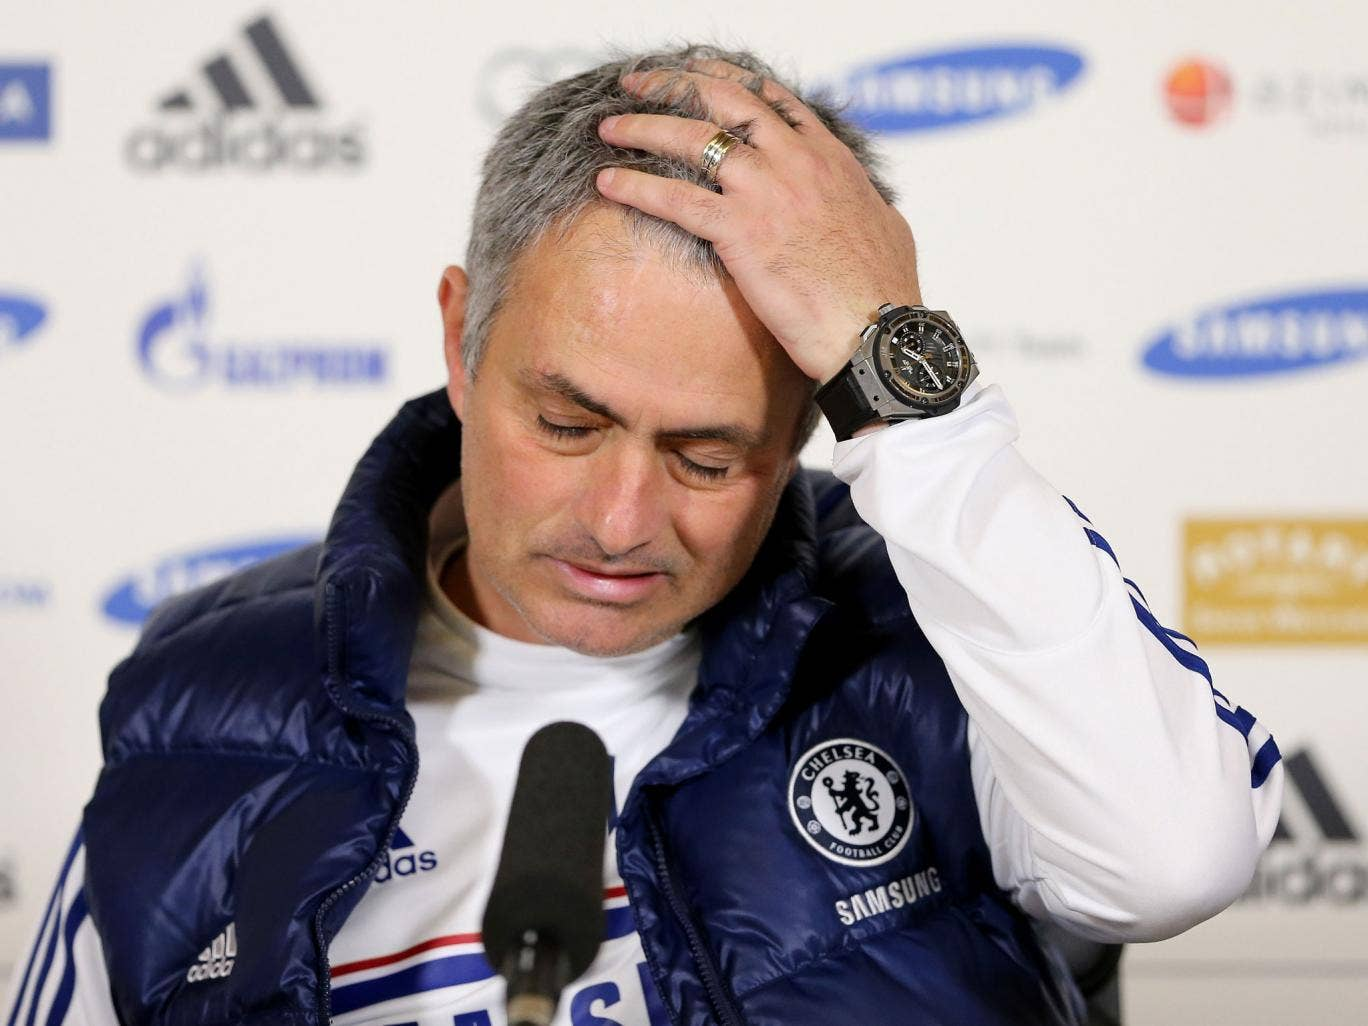 Jose Mourinho is reported to be furious that off-the-record quotes were released by a French television channel